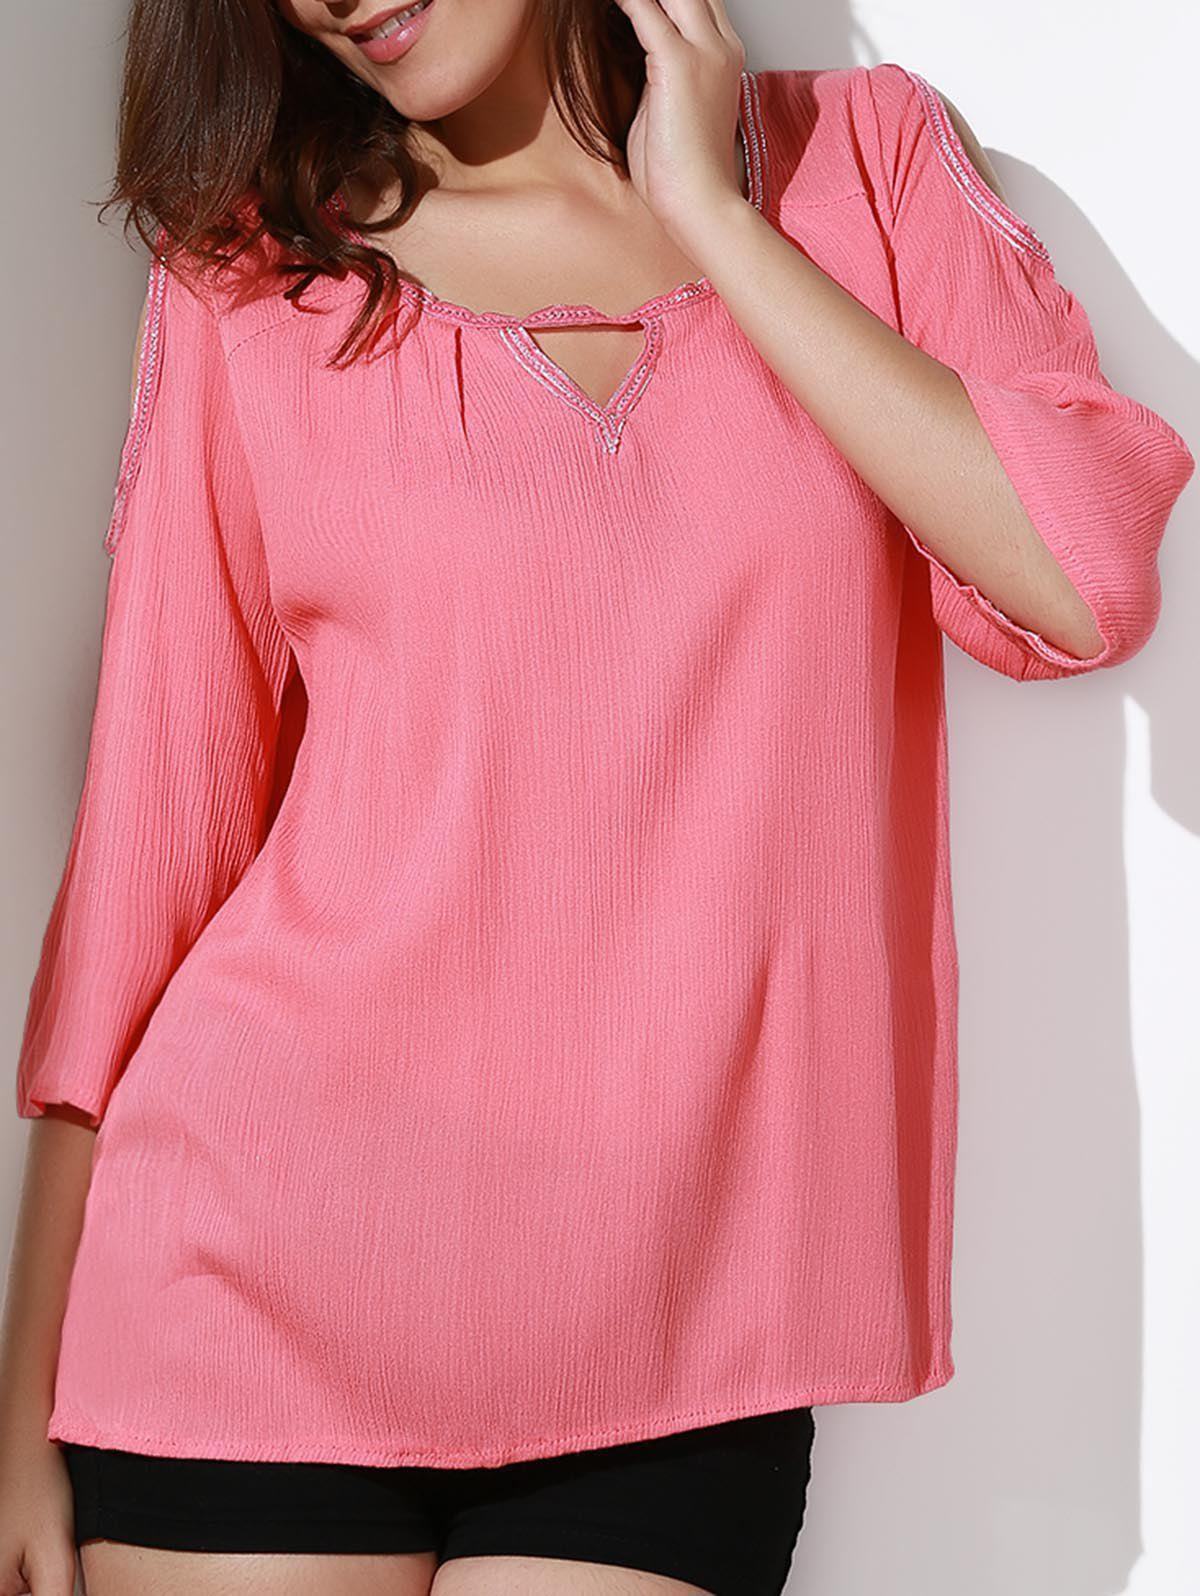 Stylish Scoop Collar 3/4 Sleeve Loose-Fitting Cold Shoulder Women's Blouse - WATERMELON RED S